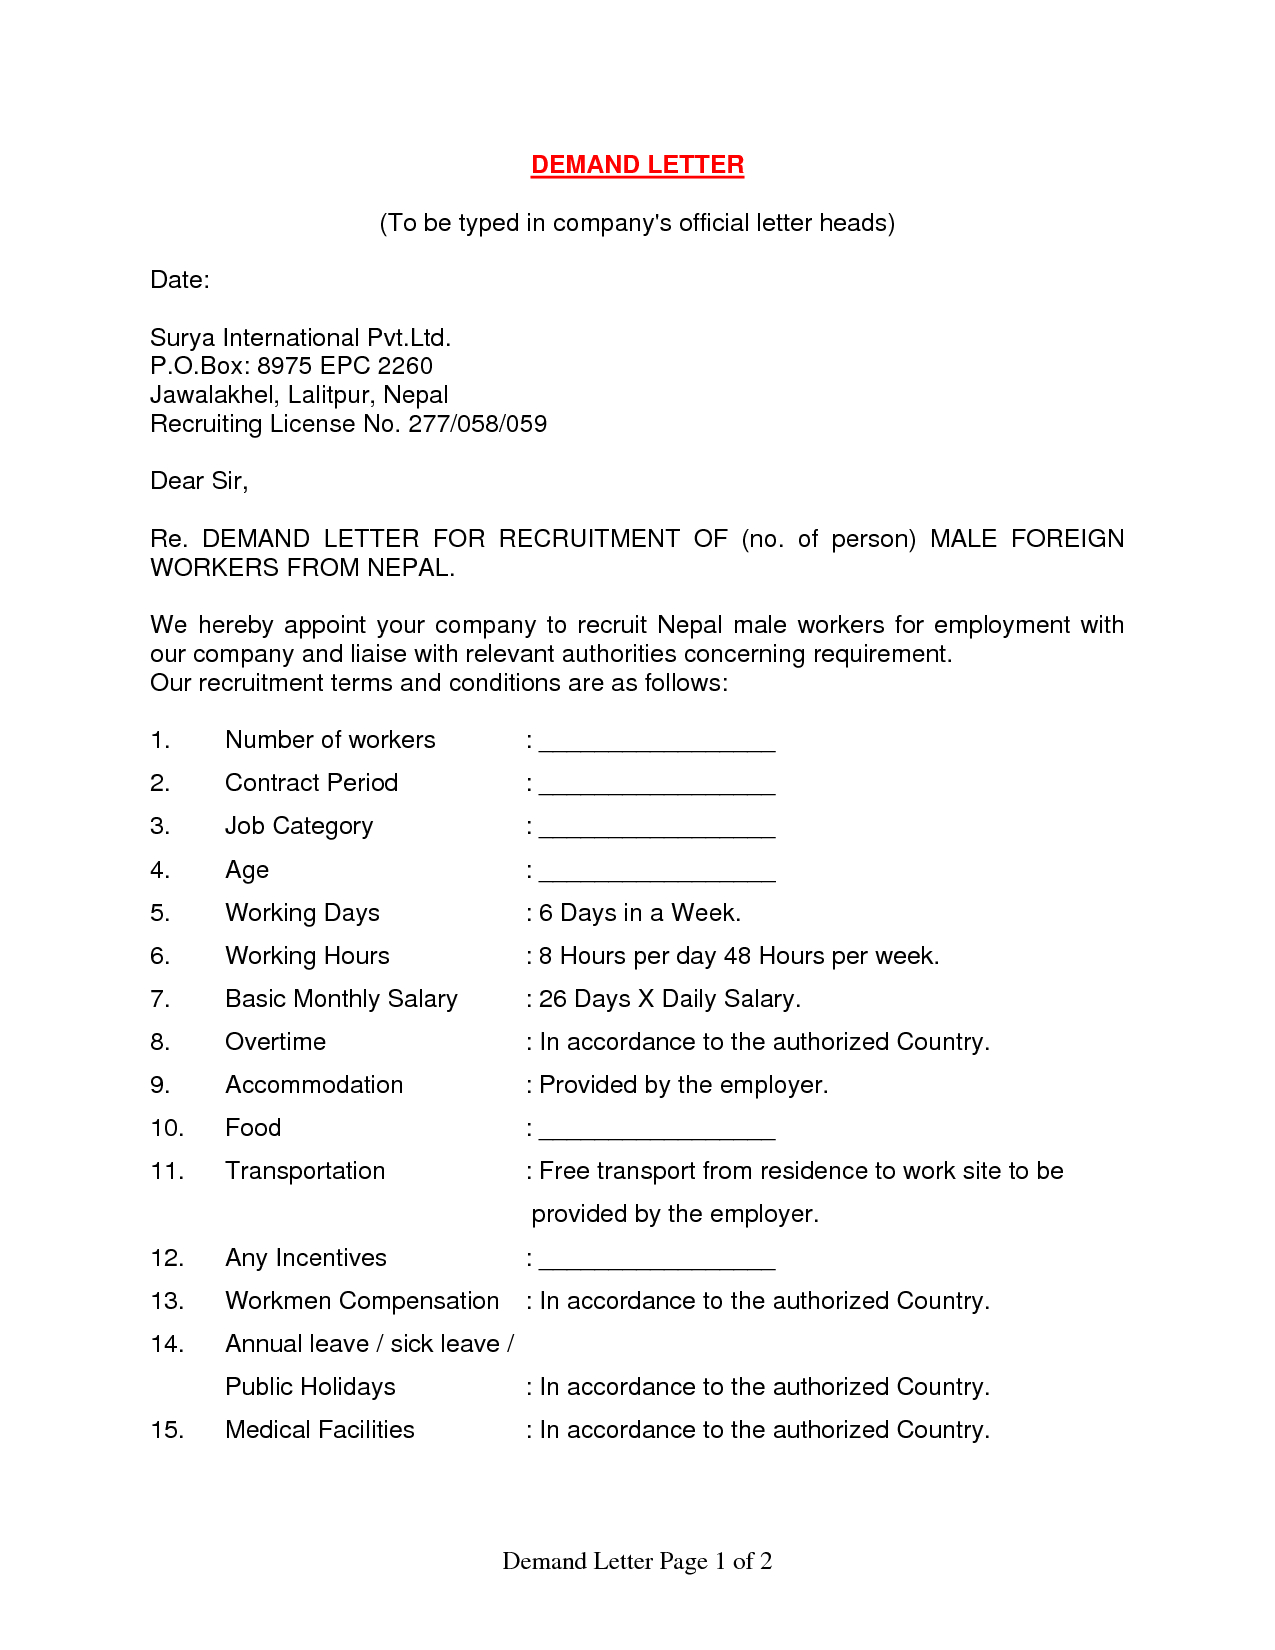 demand letter car accident template how to write letter demand letter format formal sample